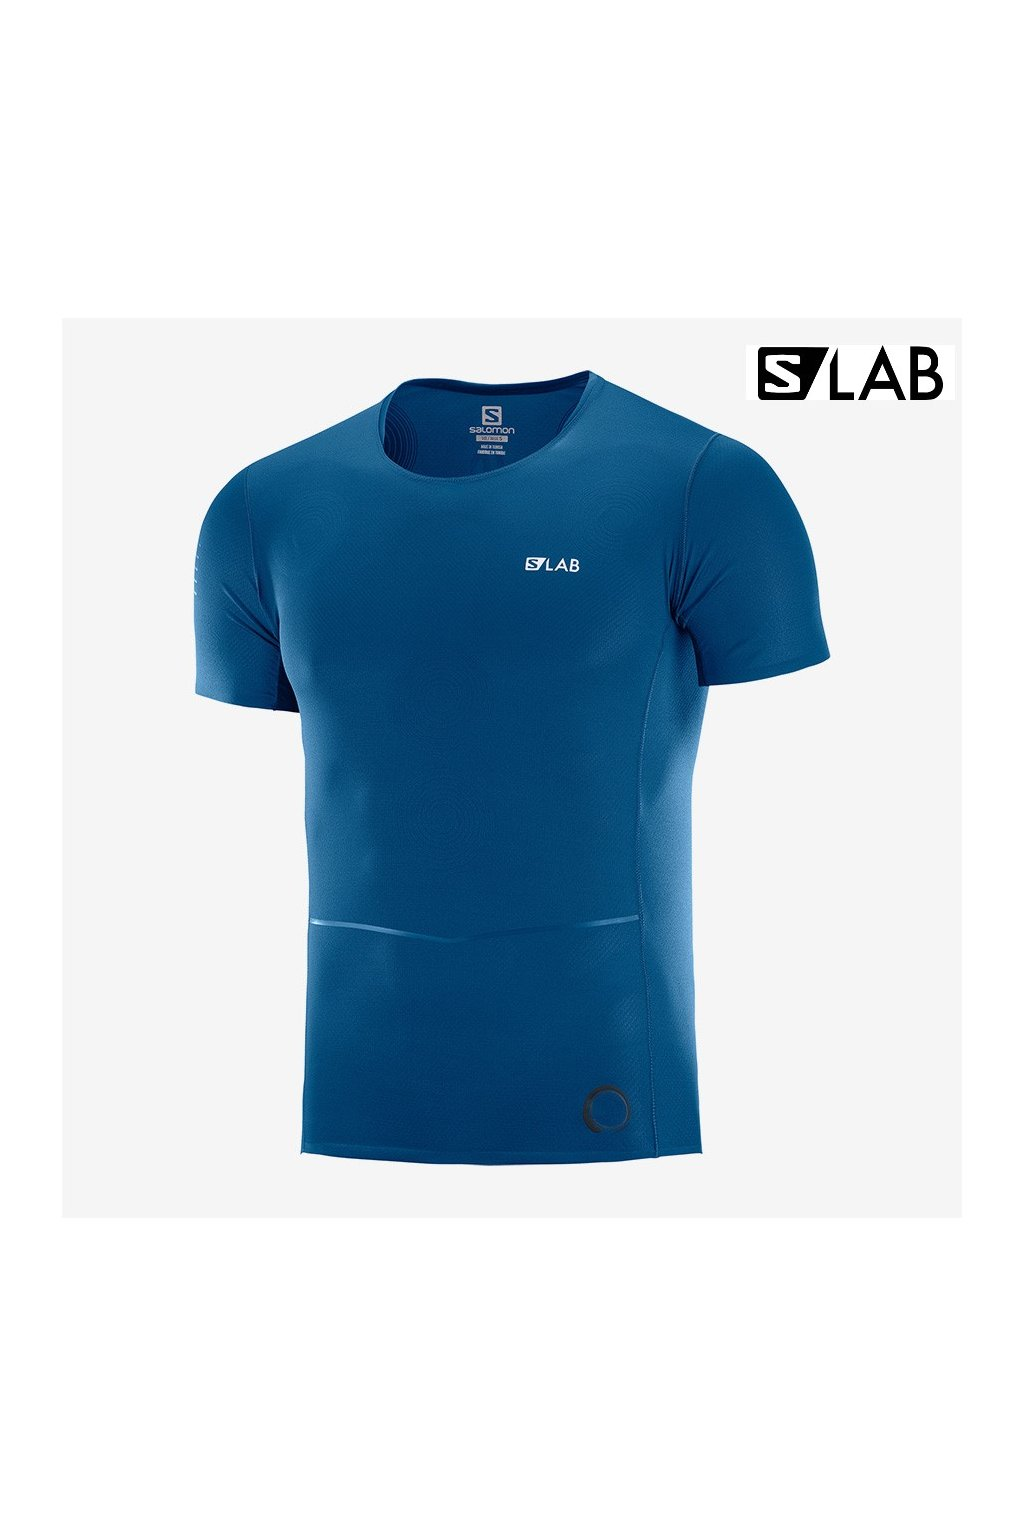 s lab nso tee m LC1290000 (1)